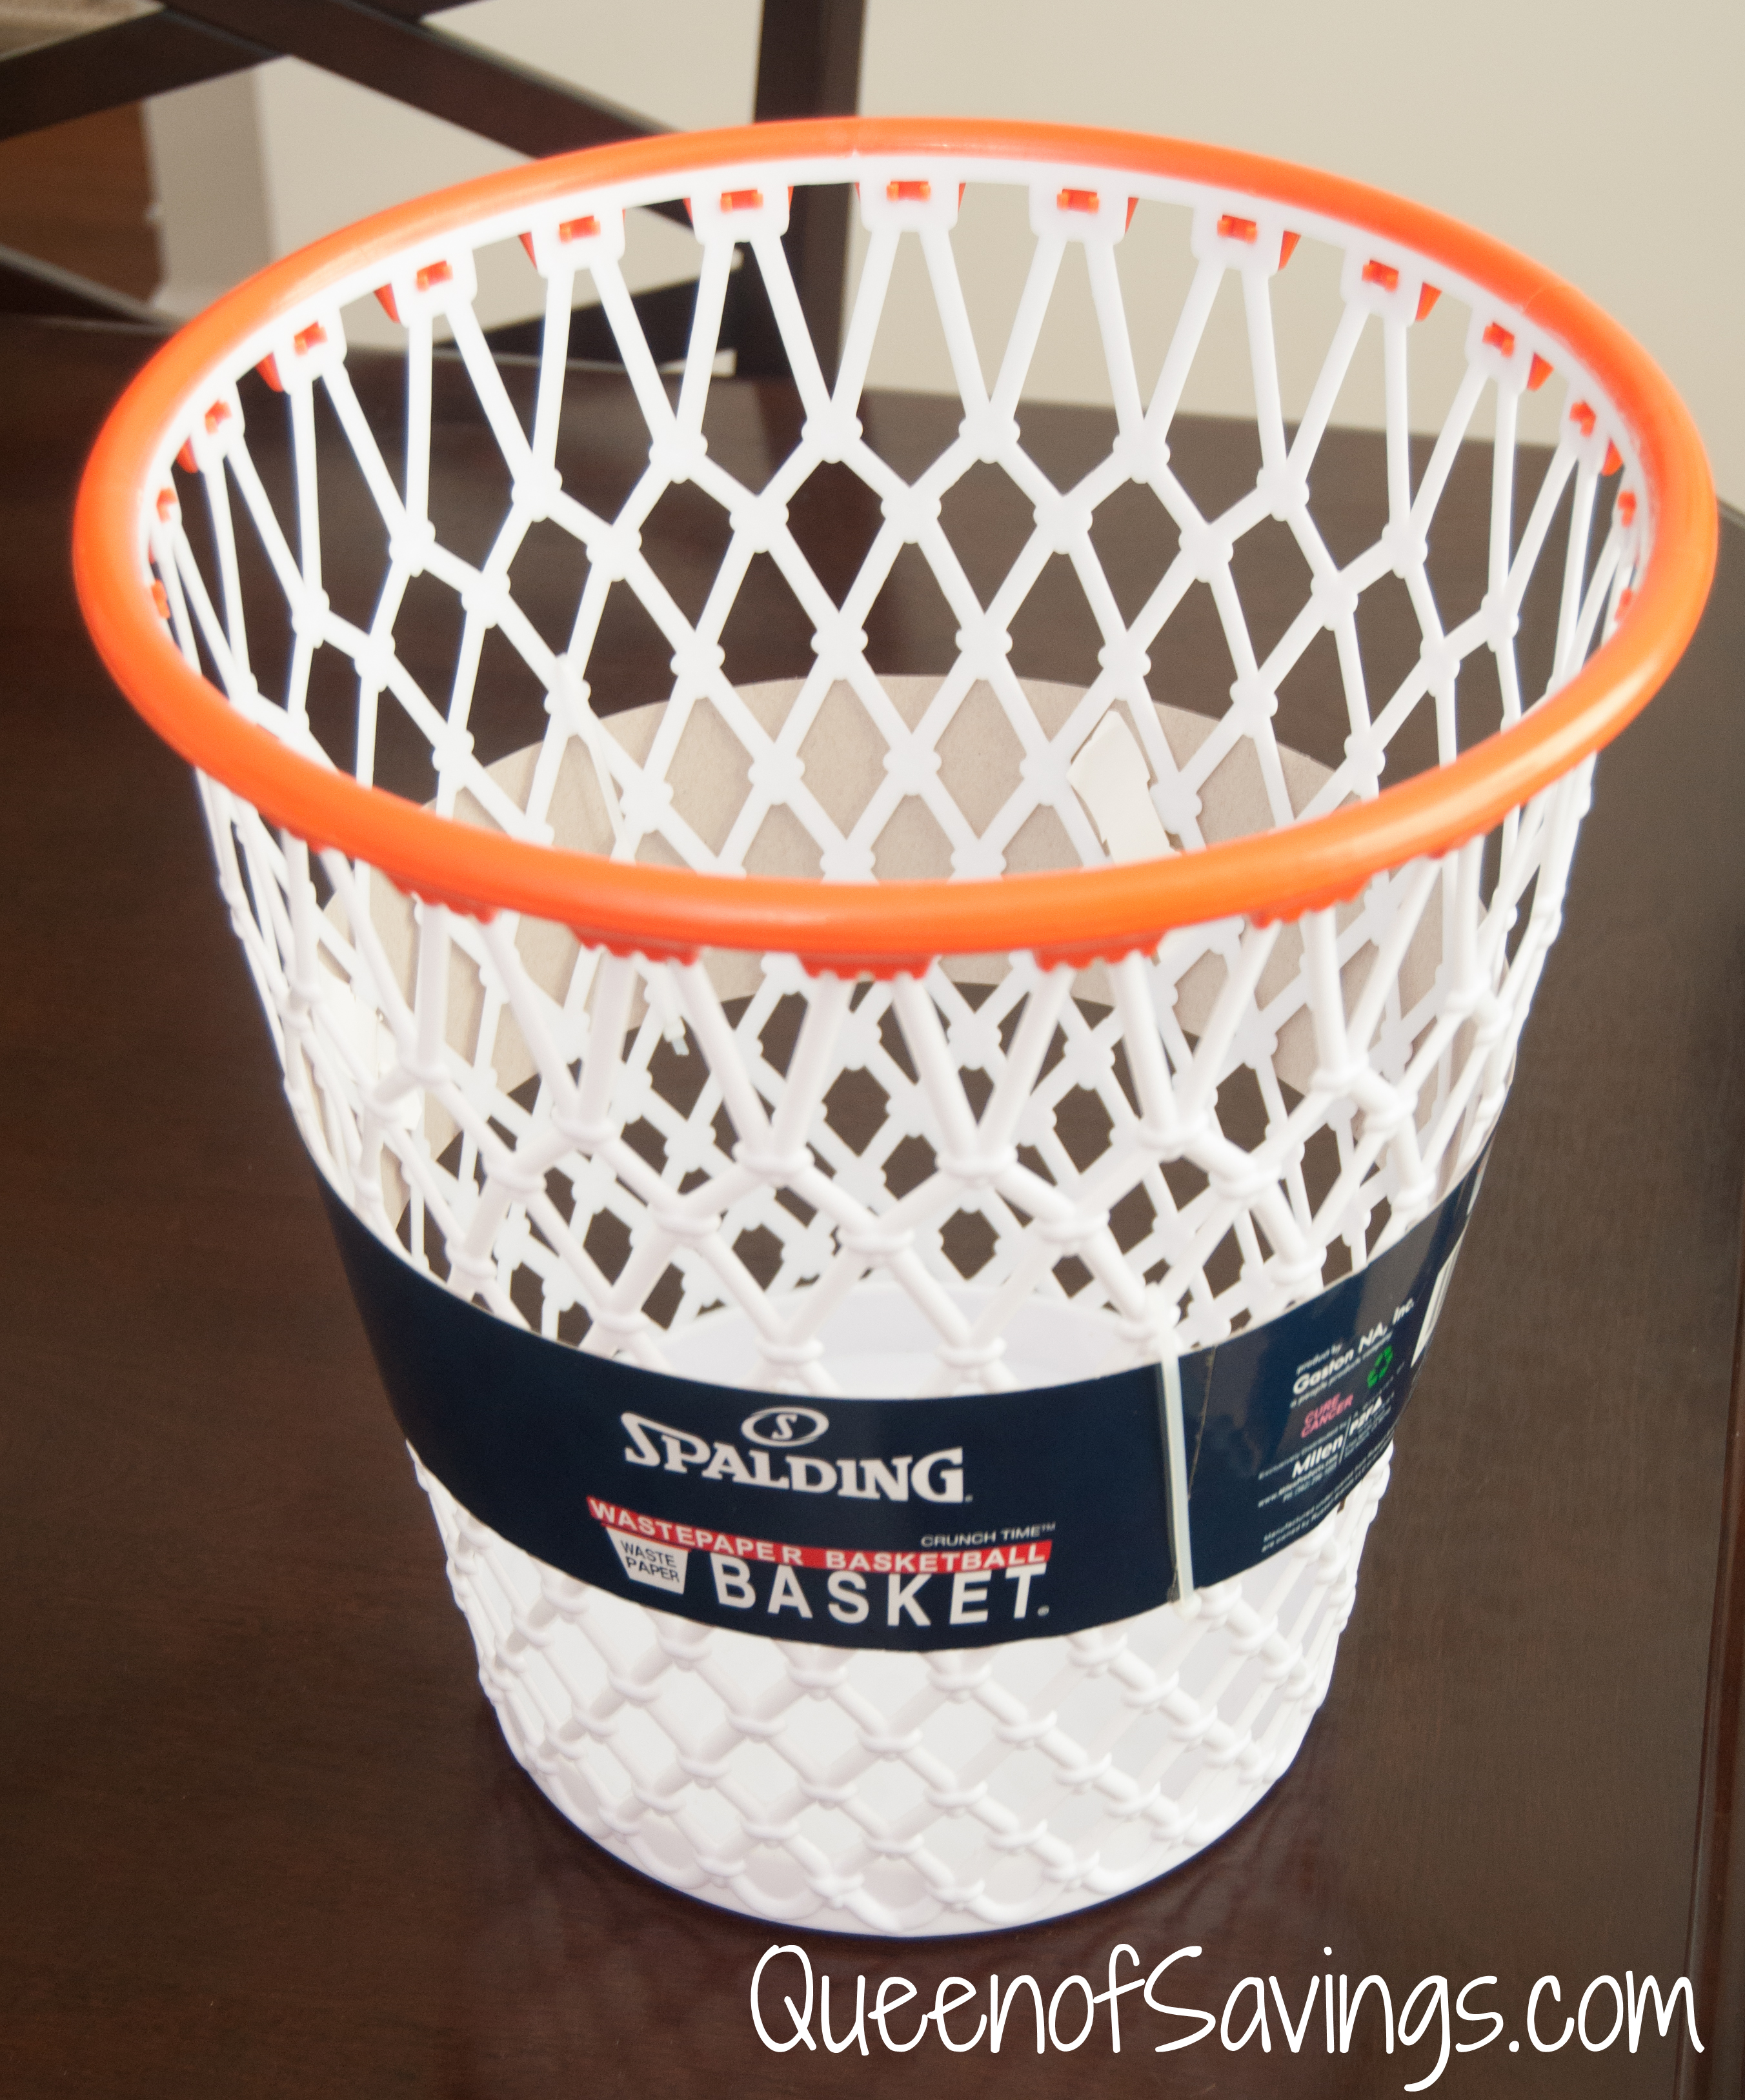 Fun father 39 s day gift ideas queen of reviews - Basketball waste paper basket ...